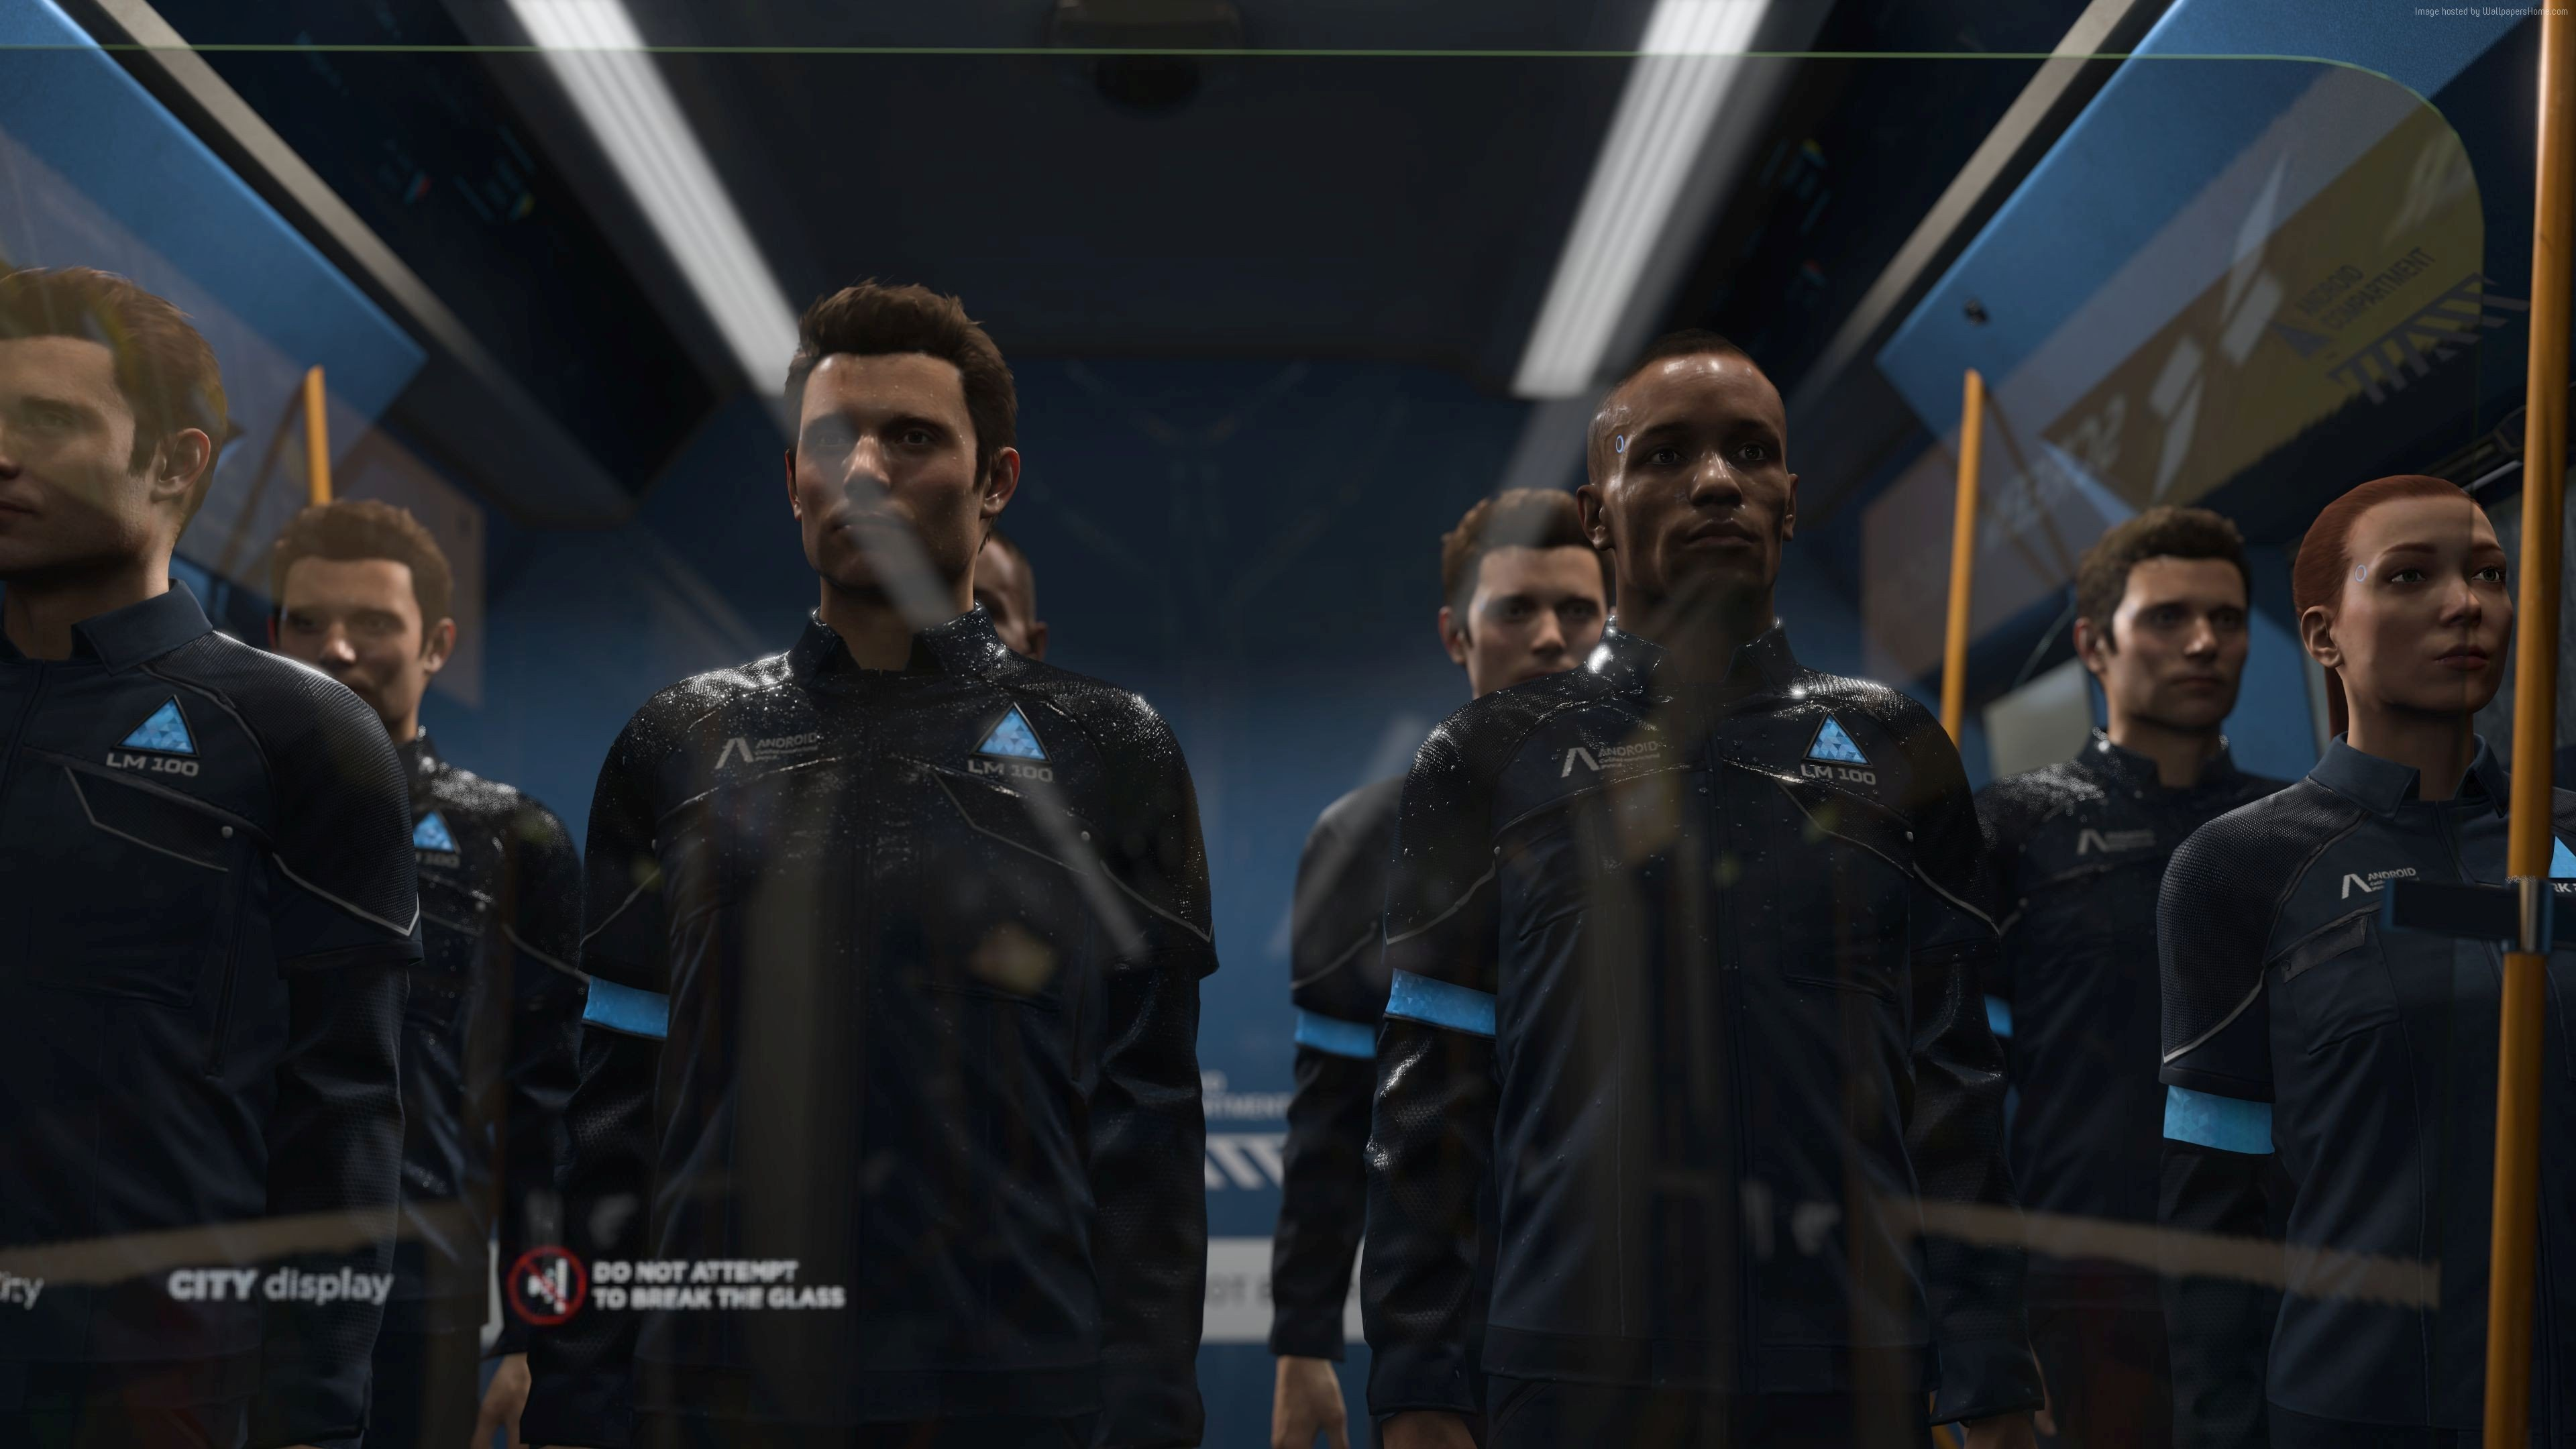 Detroit: Become Human - Full Cast List - Guide - Push Square